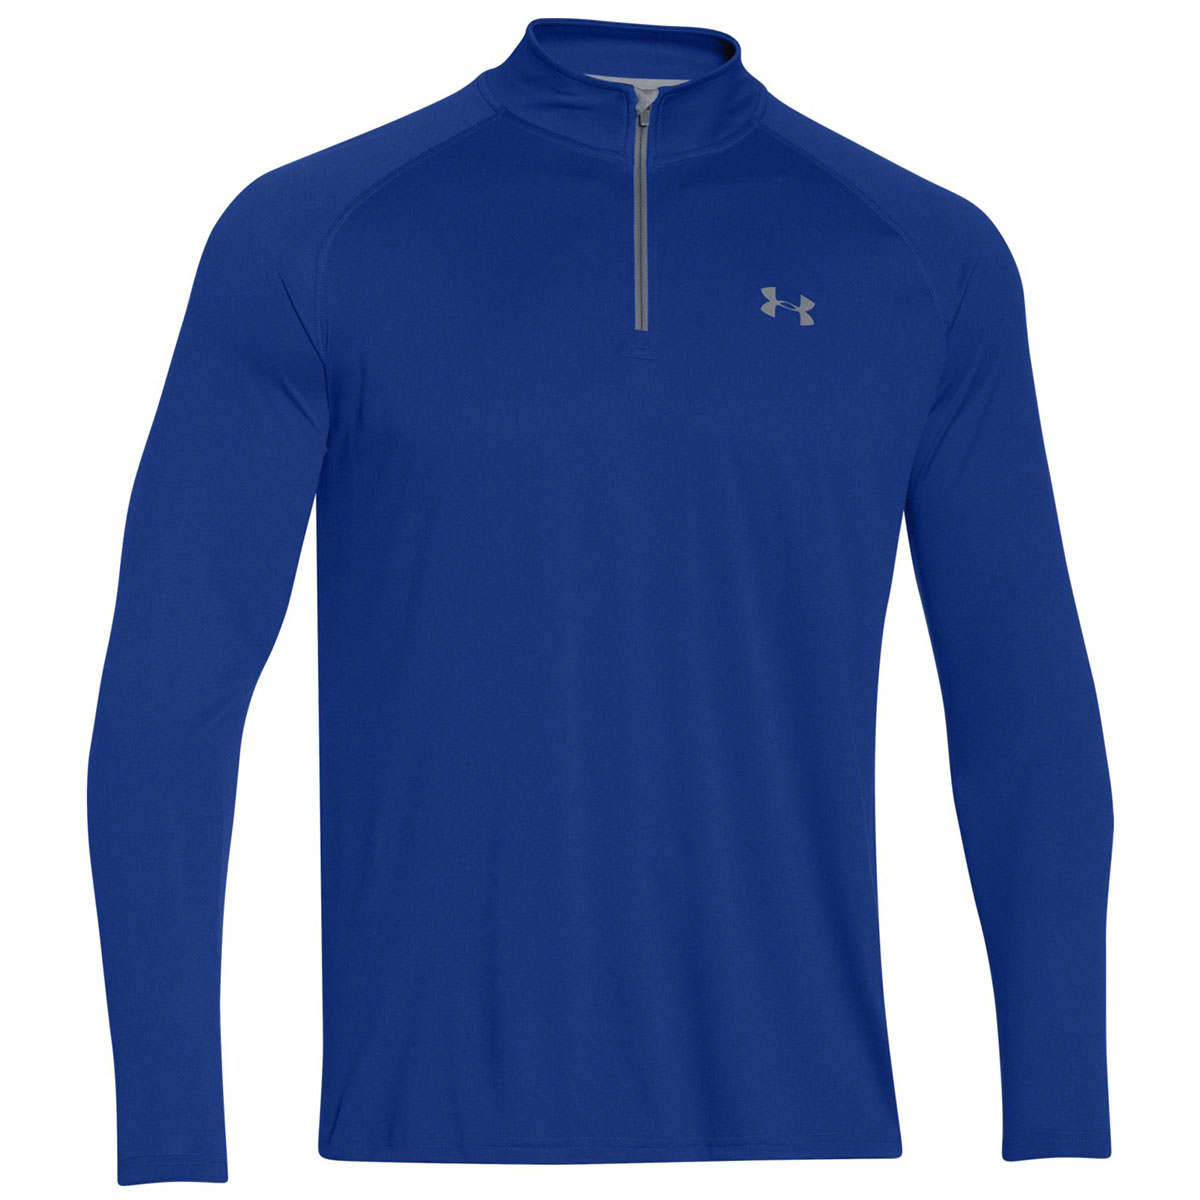 Under-Armour-Mens-UA-Tech-1-4-Zip-Long-Sleeve-Top-Workout-Layer-27-OFF-RRP thumbnail 77